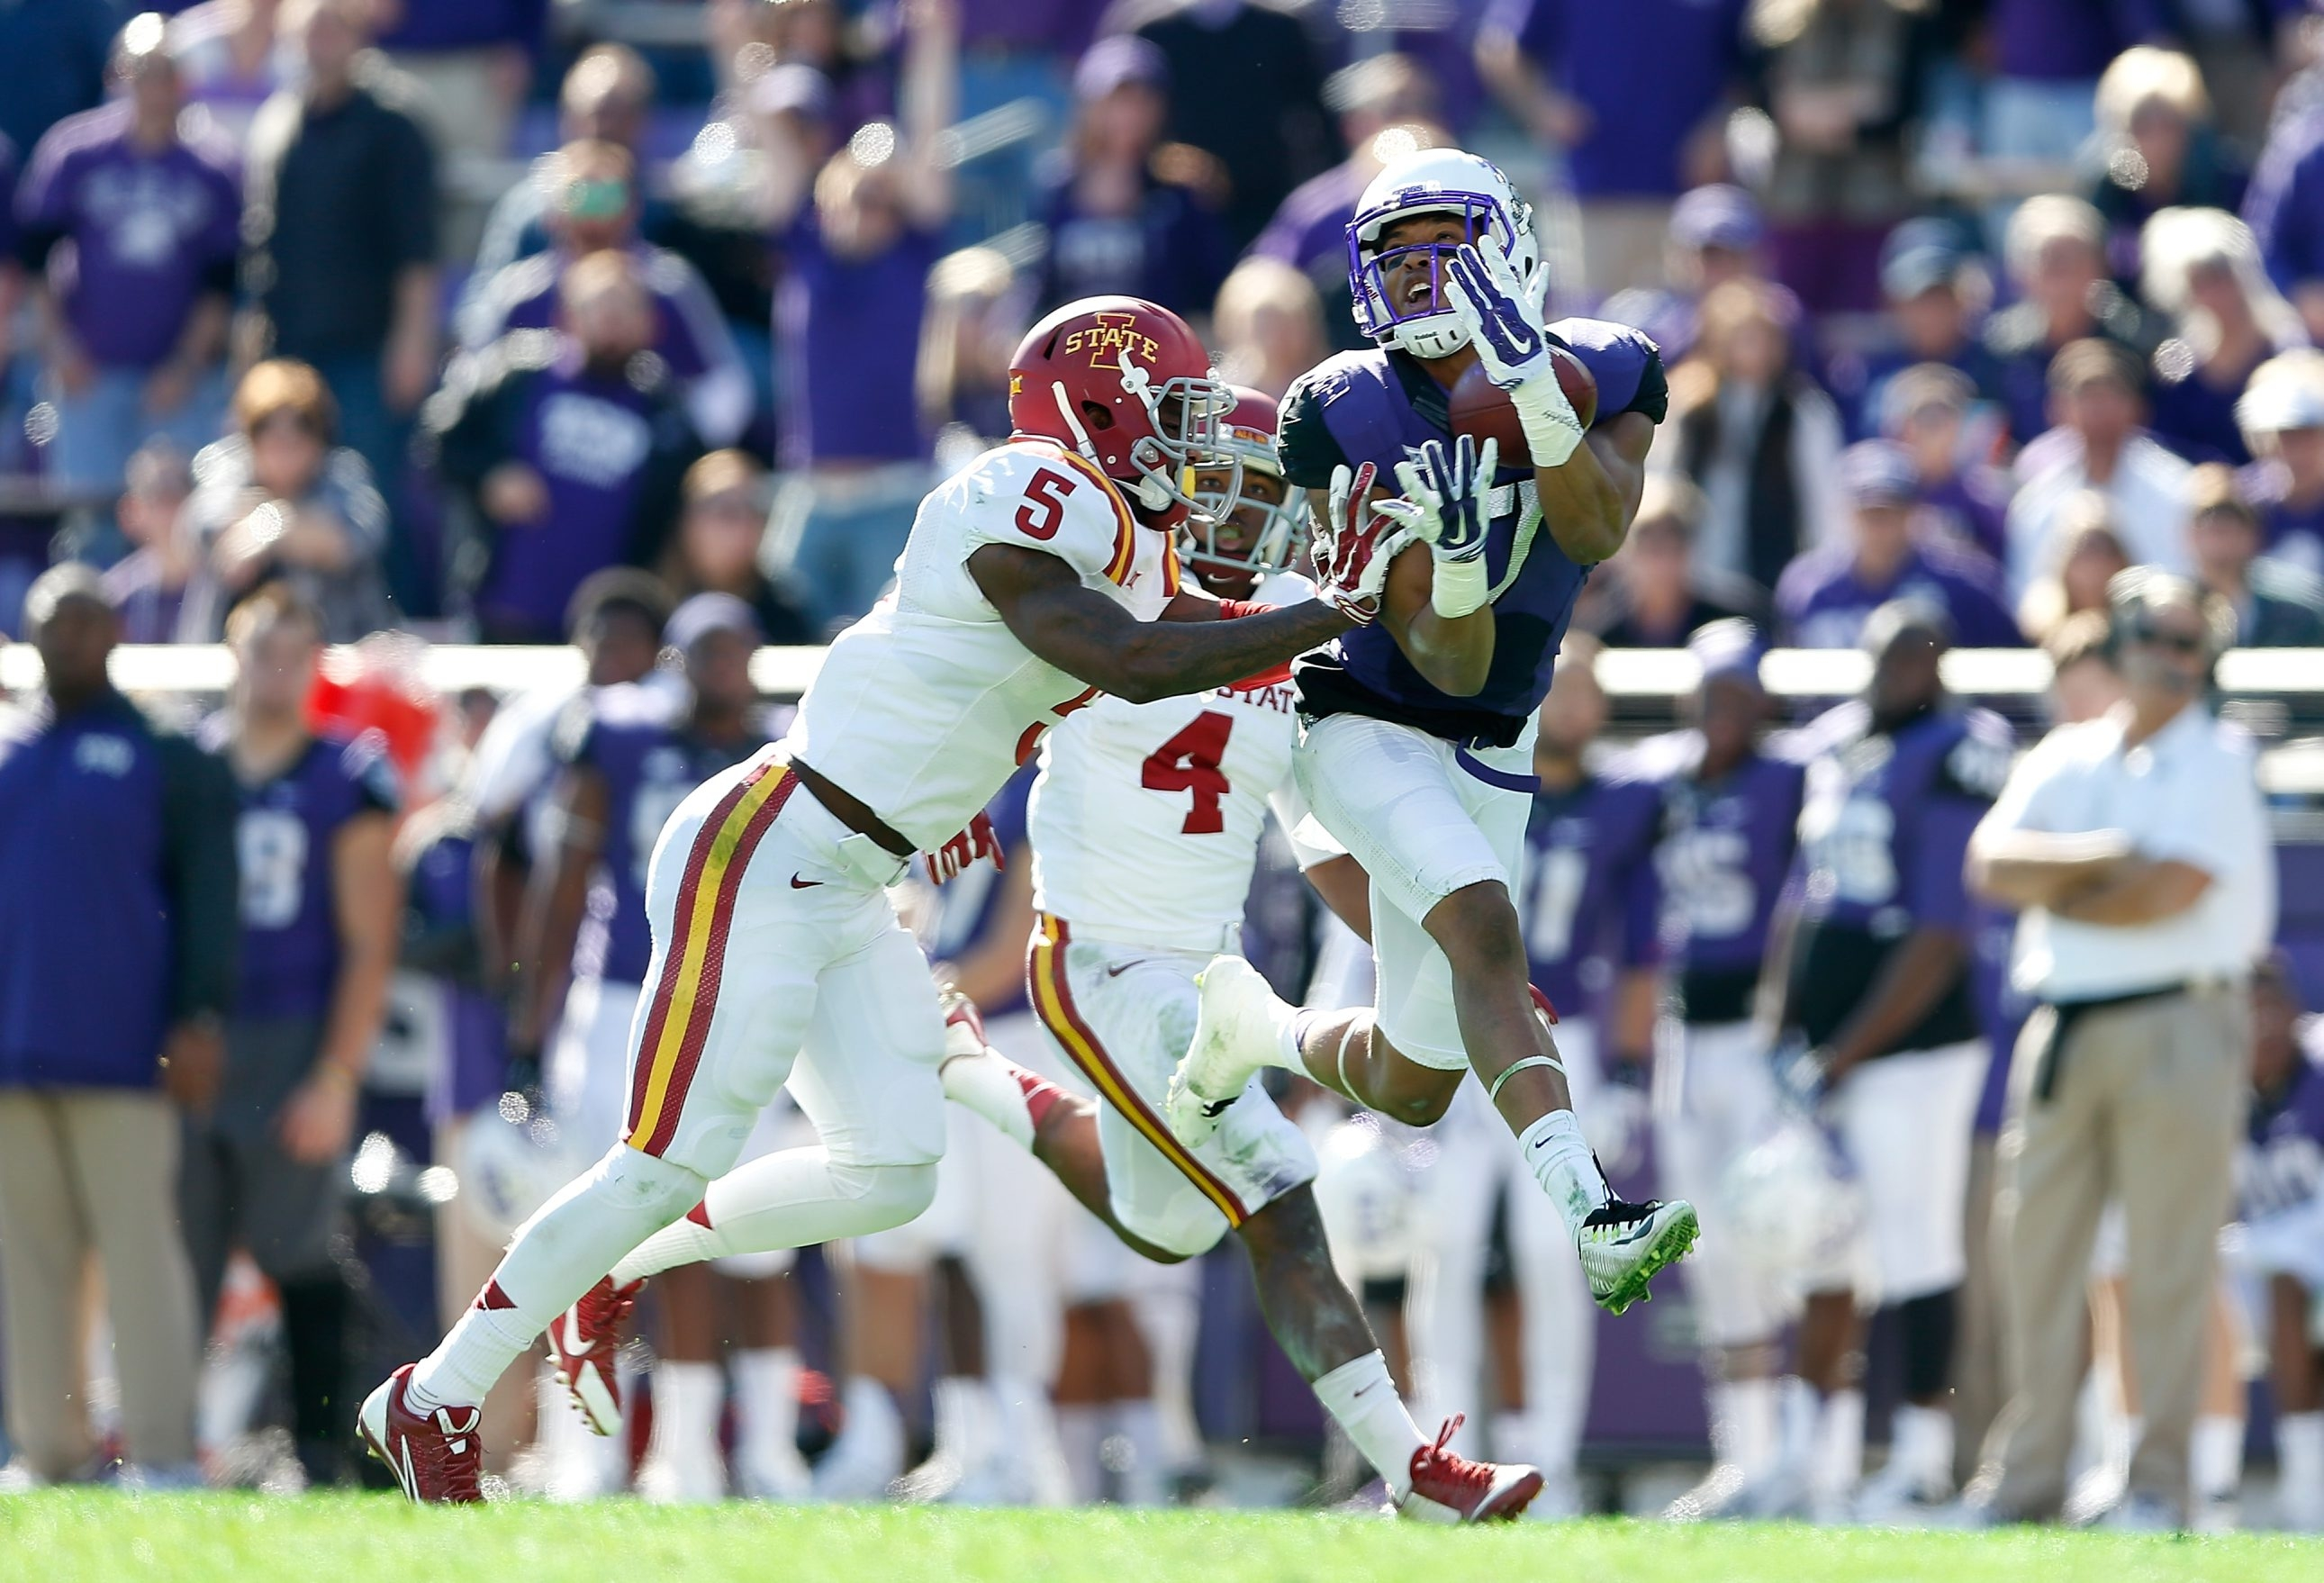 TCU wide receiver Kolby Listenbee, a track All-American, has a game that is all about speed.